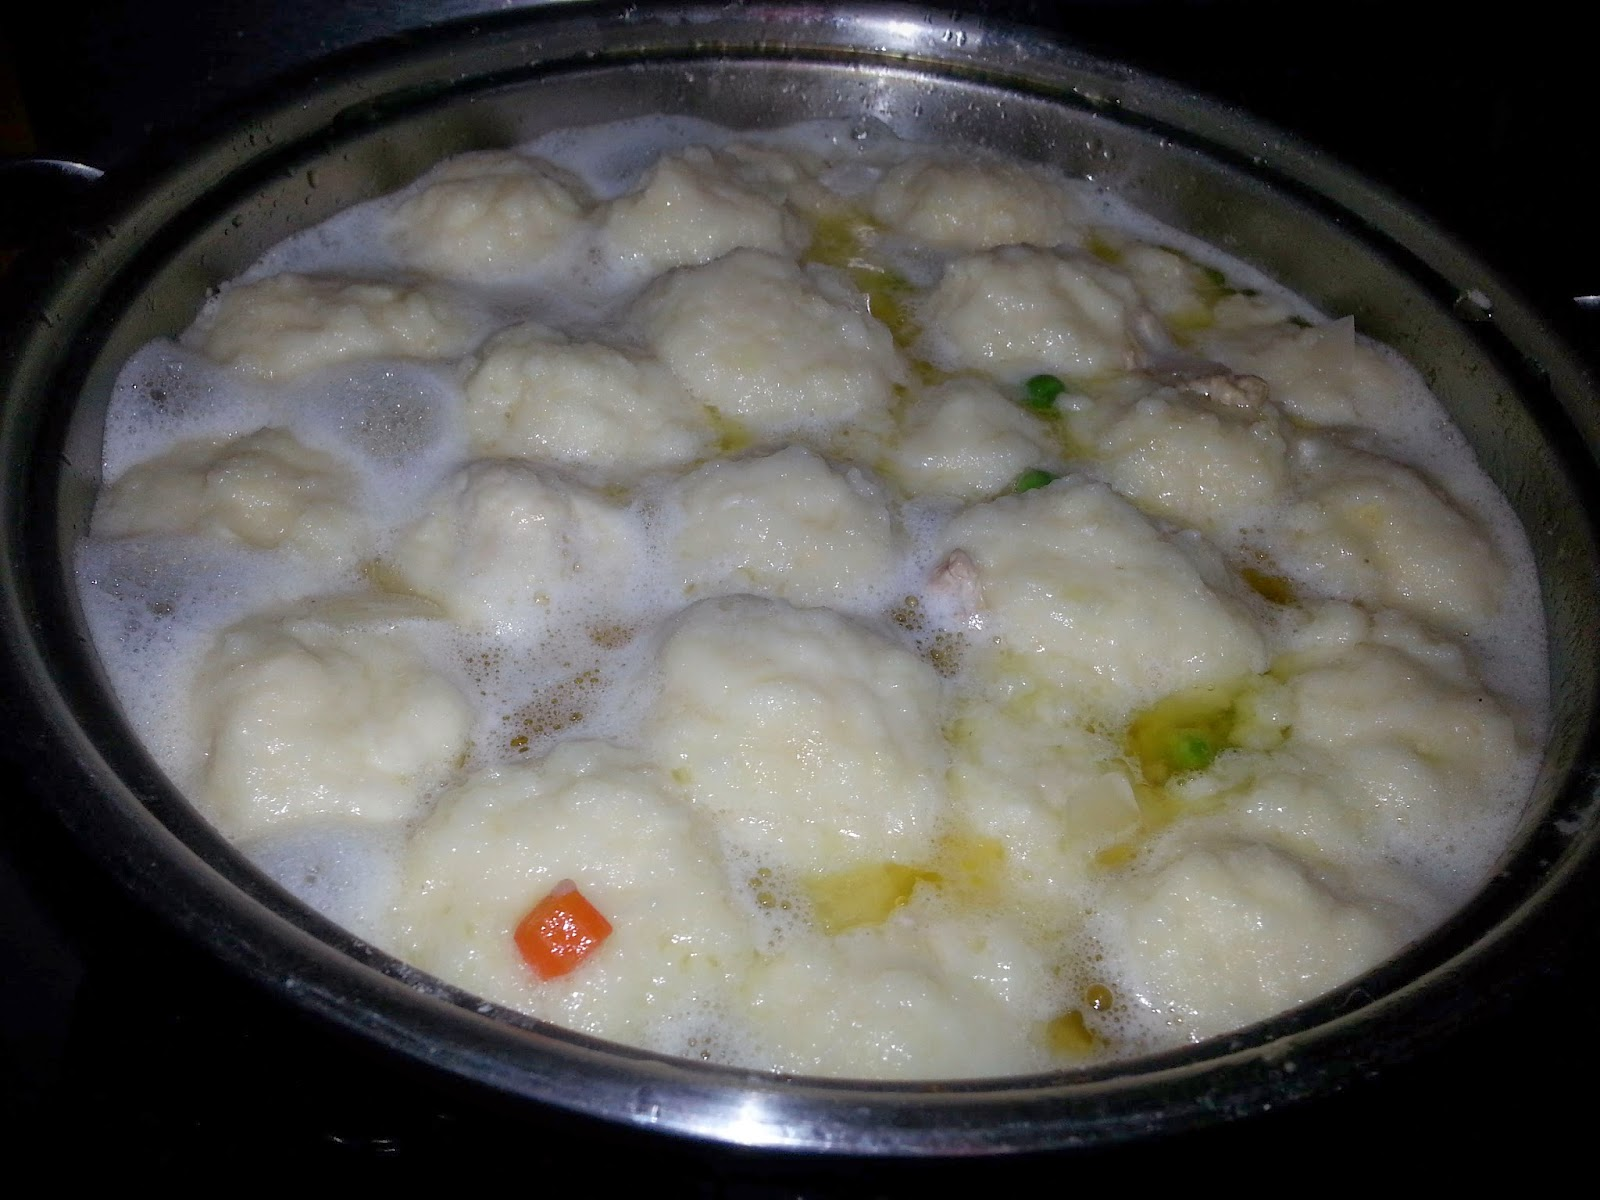 Simmering Chicken & Dumplings | Navigating Hectivity by Micki Bare